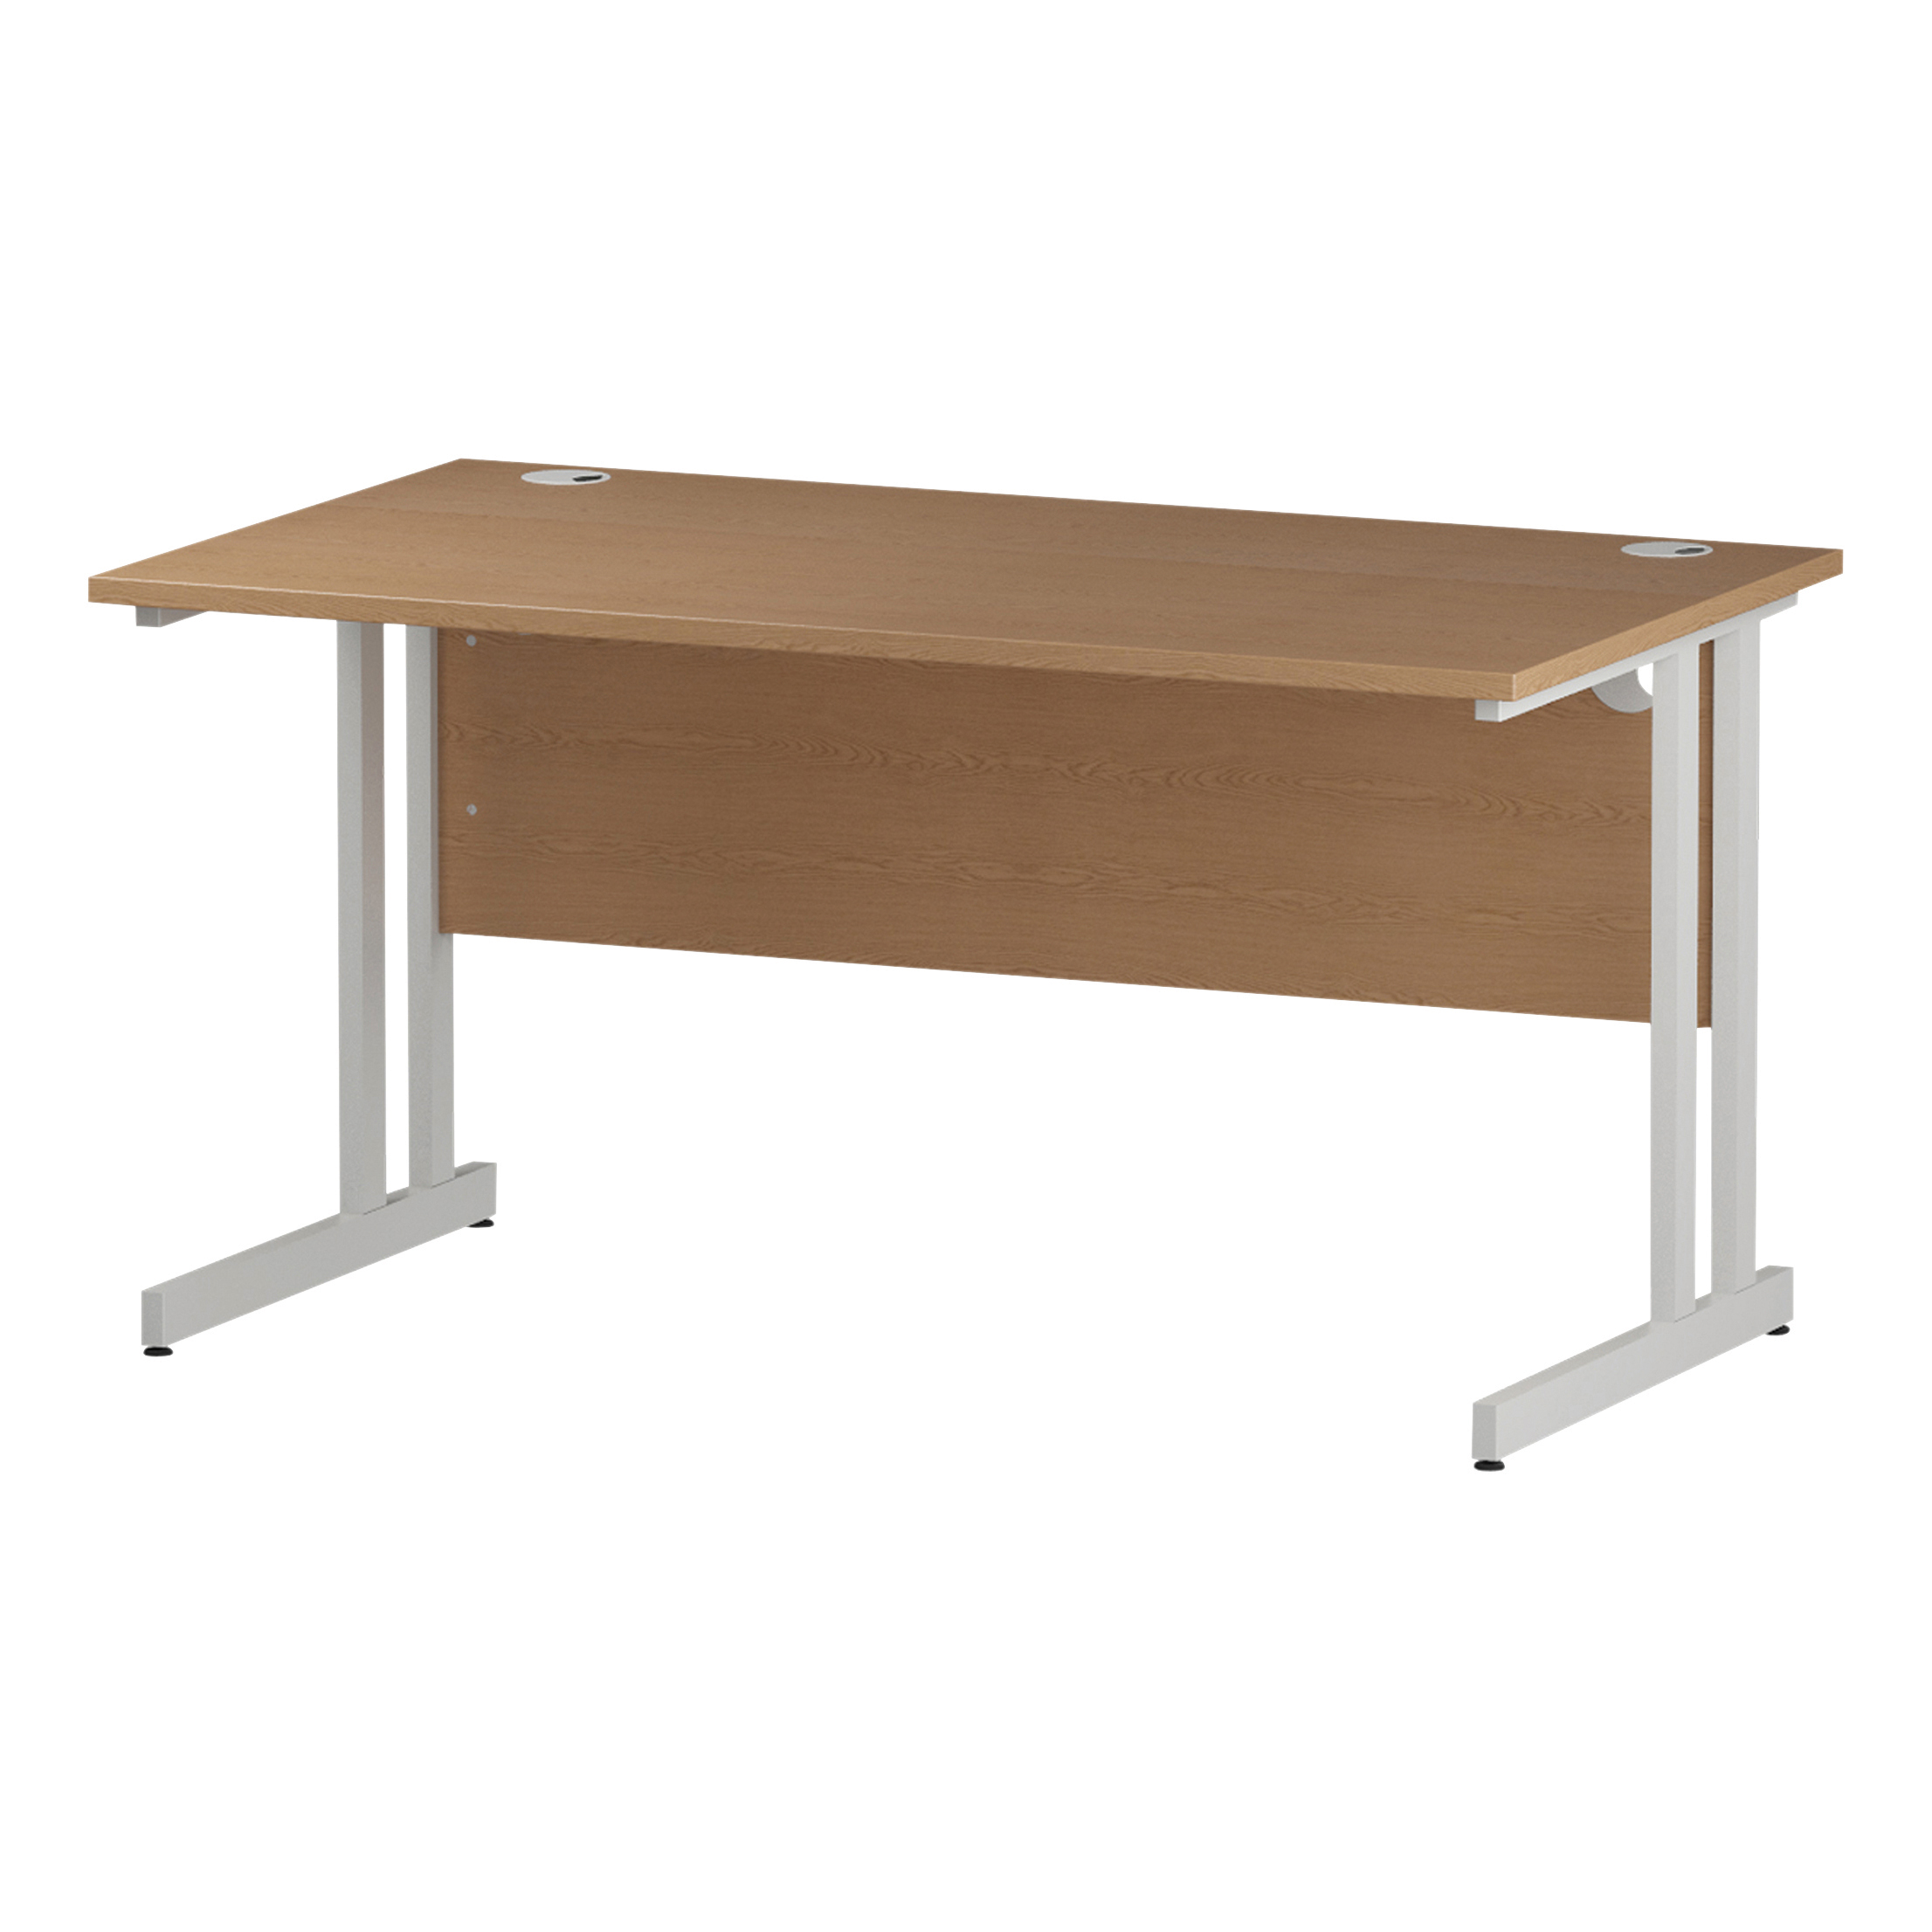 Trexus Rectangular Desk White Cantilever Leg 1400x800mm Oak Ref I002644